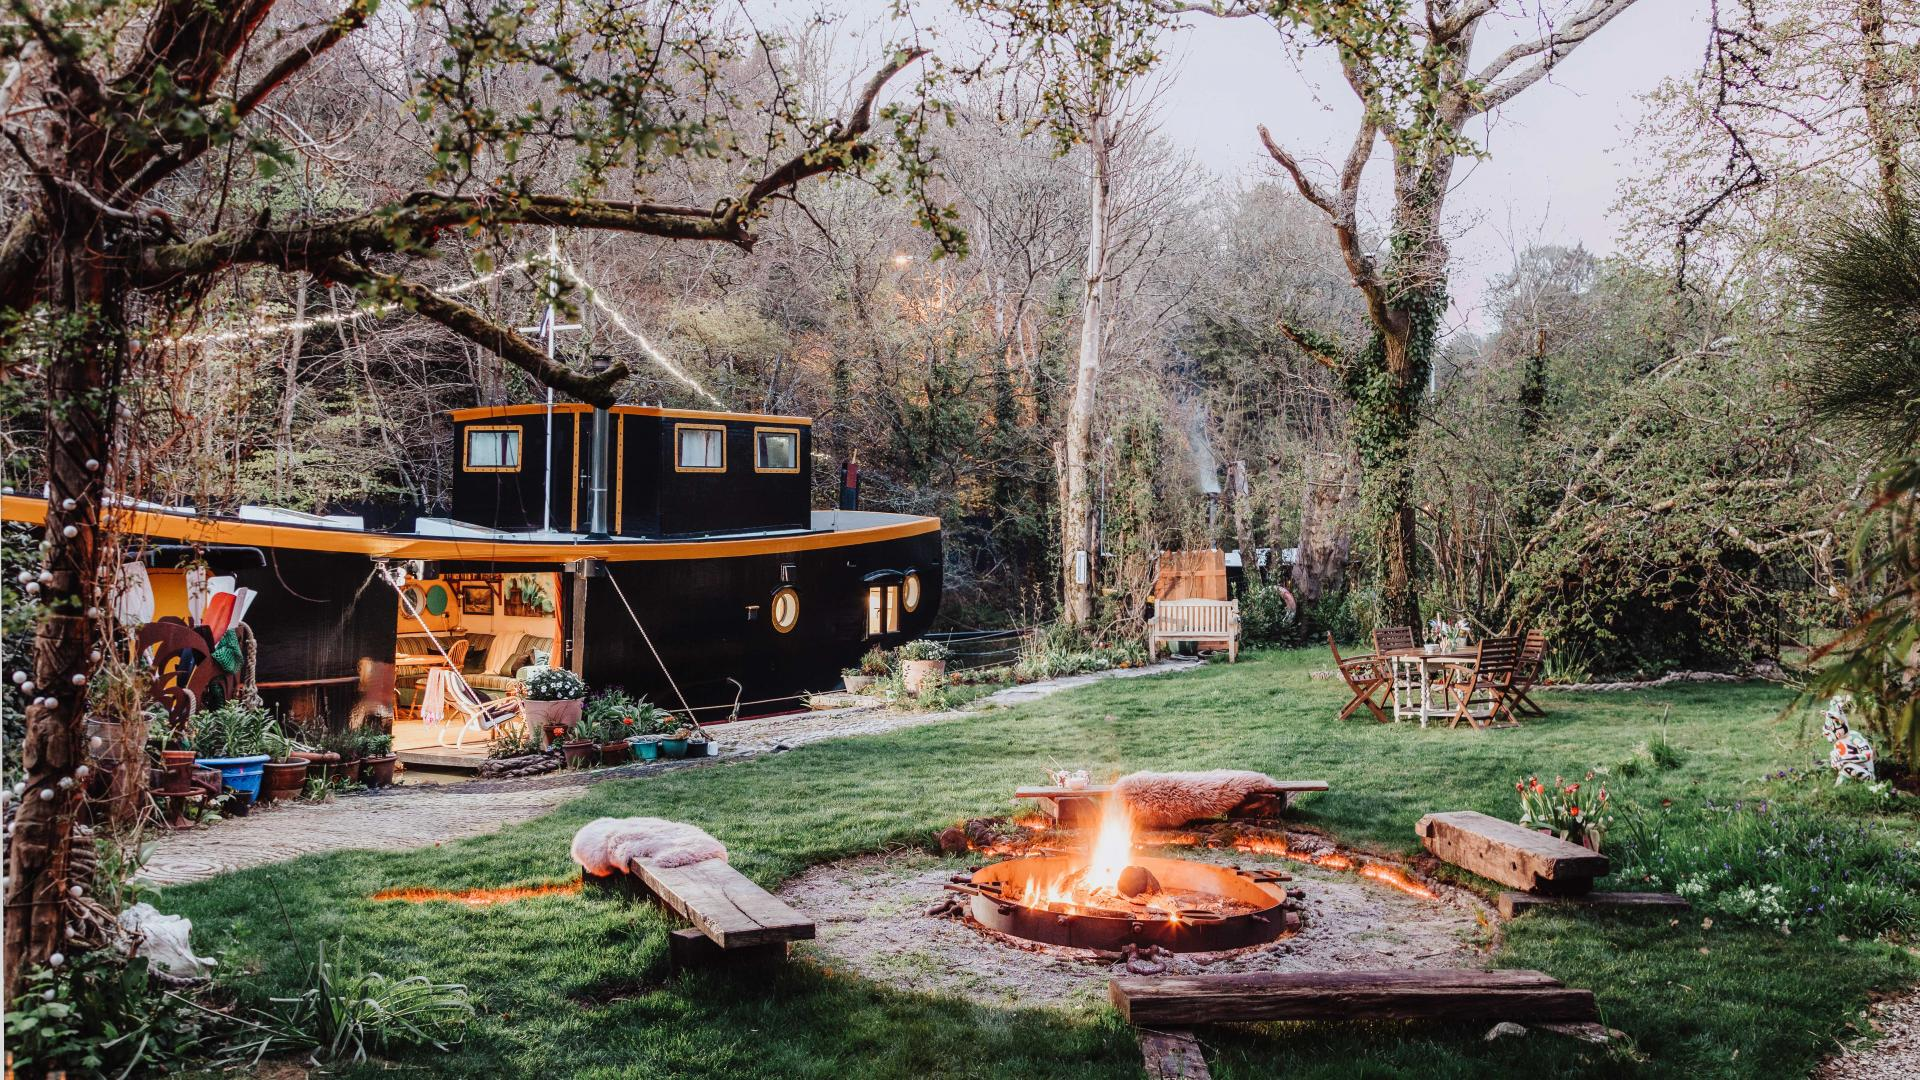 Self-catering accommodation: a barge to rent in Cornwall